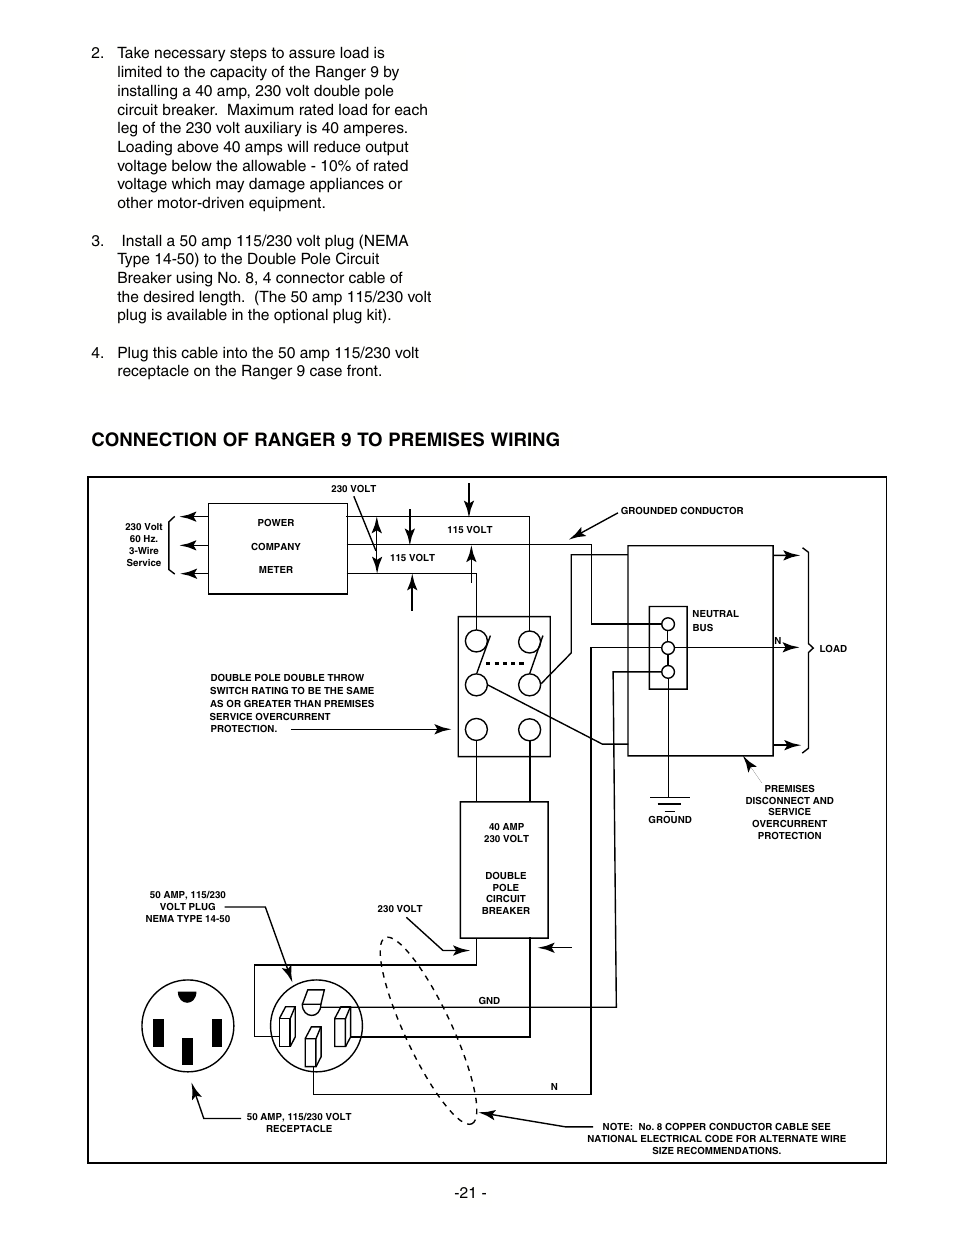 connection of ranger 9 to premises wiring | lincoln electric im511 ranger 9  user manual | page 23 / 41